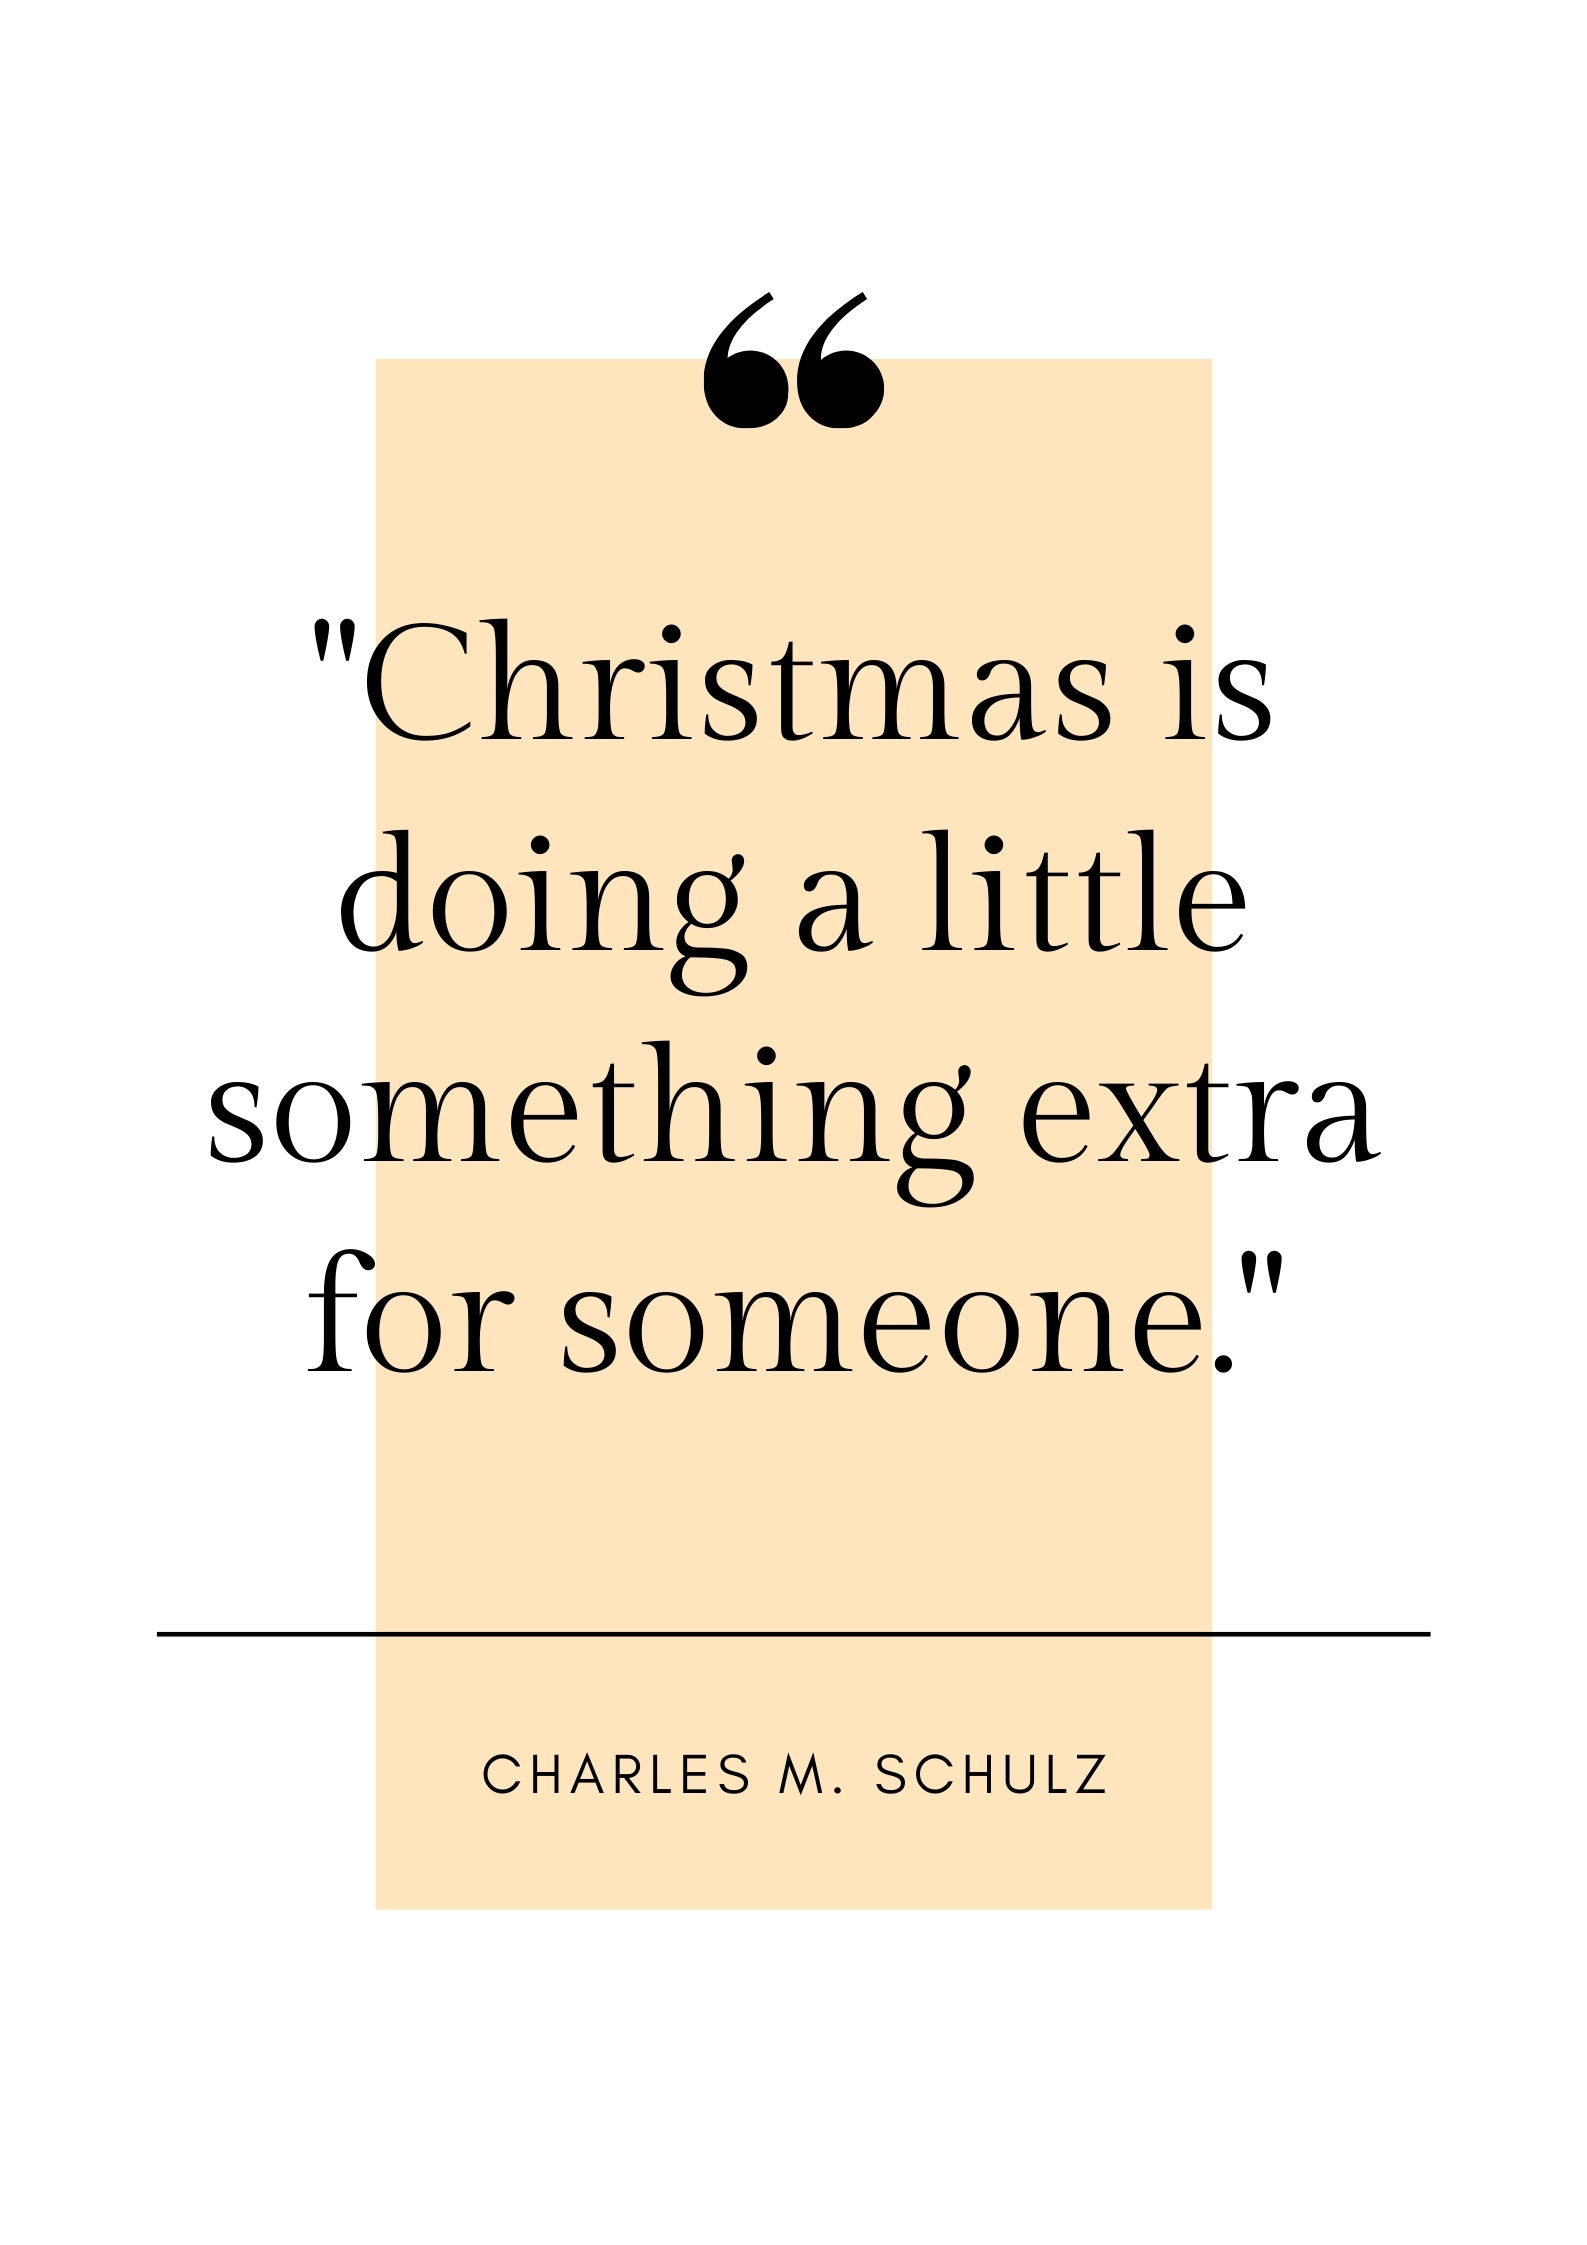 charles m schulz christmas quote